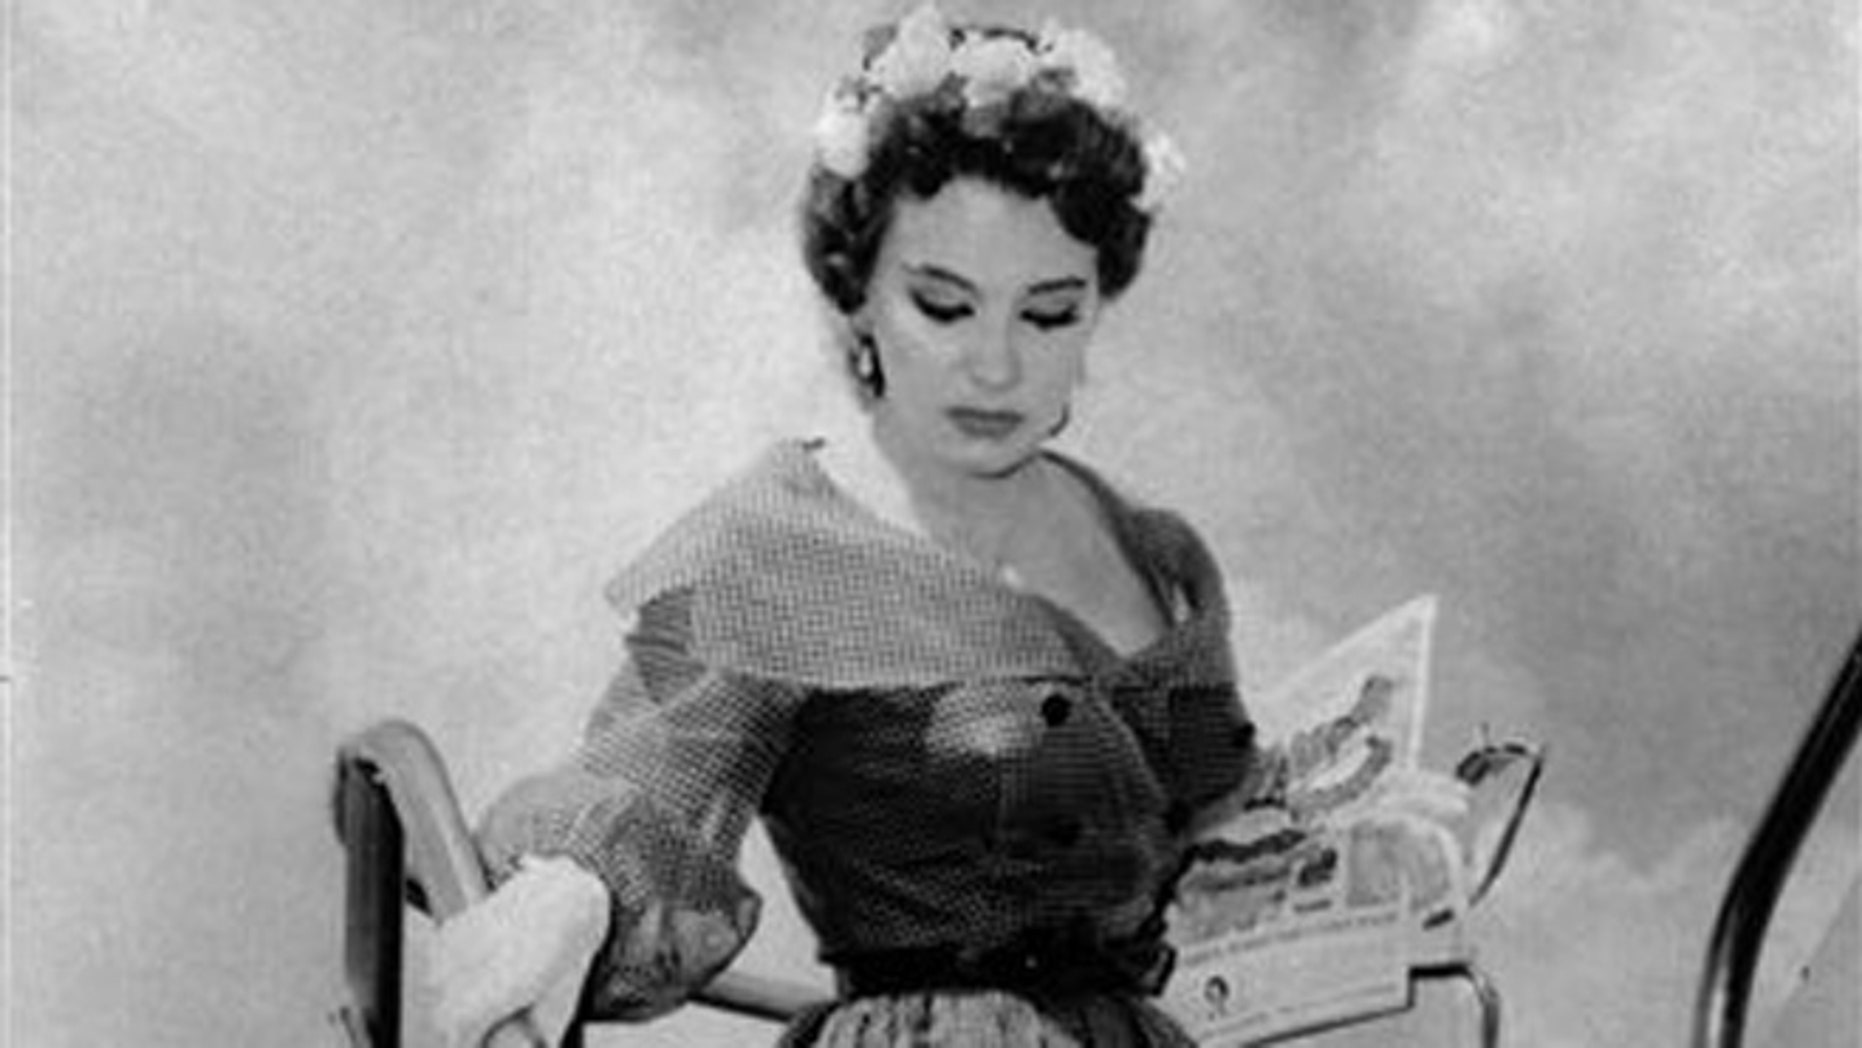 Sept. 2, 1959: Blaze Starr, a burlesque star and stripper, arrives in New Orleans by plane from Miami to visit Louisiana Gov. Earl K. Long.